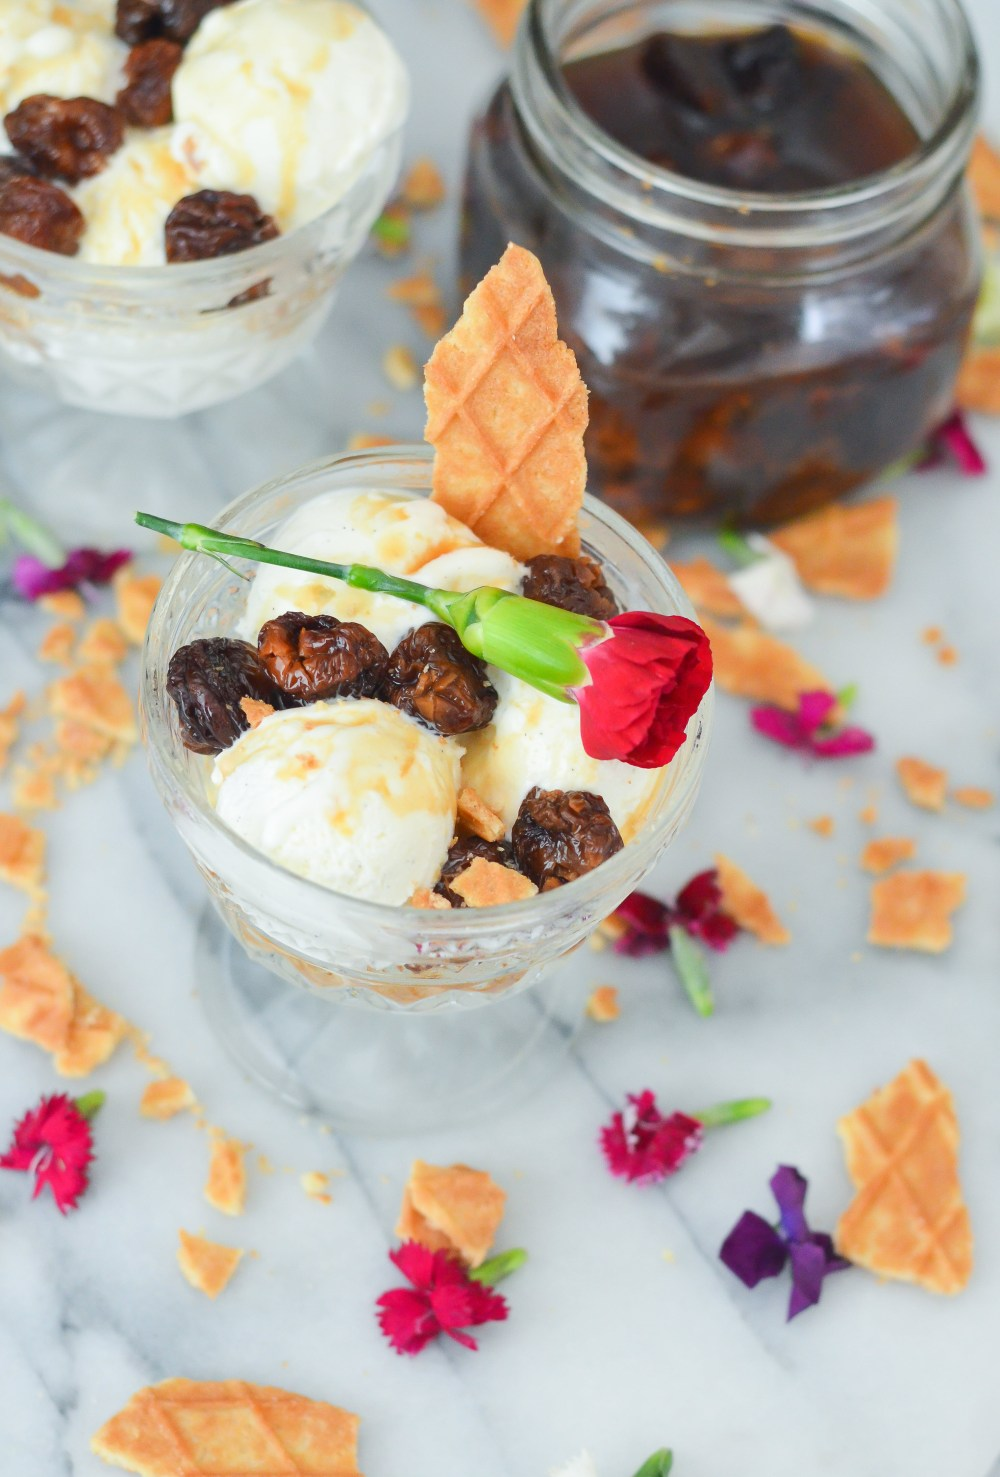 Ice Cream Toppings for Adults